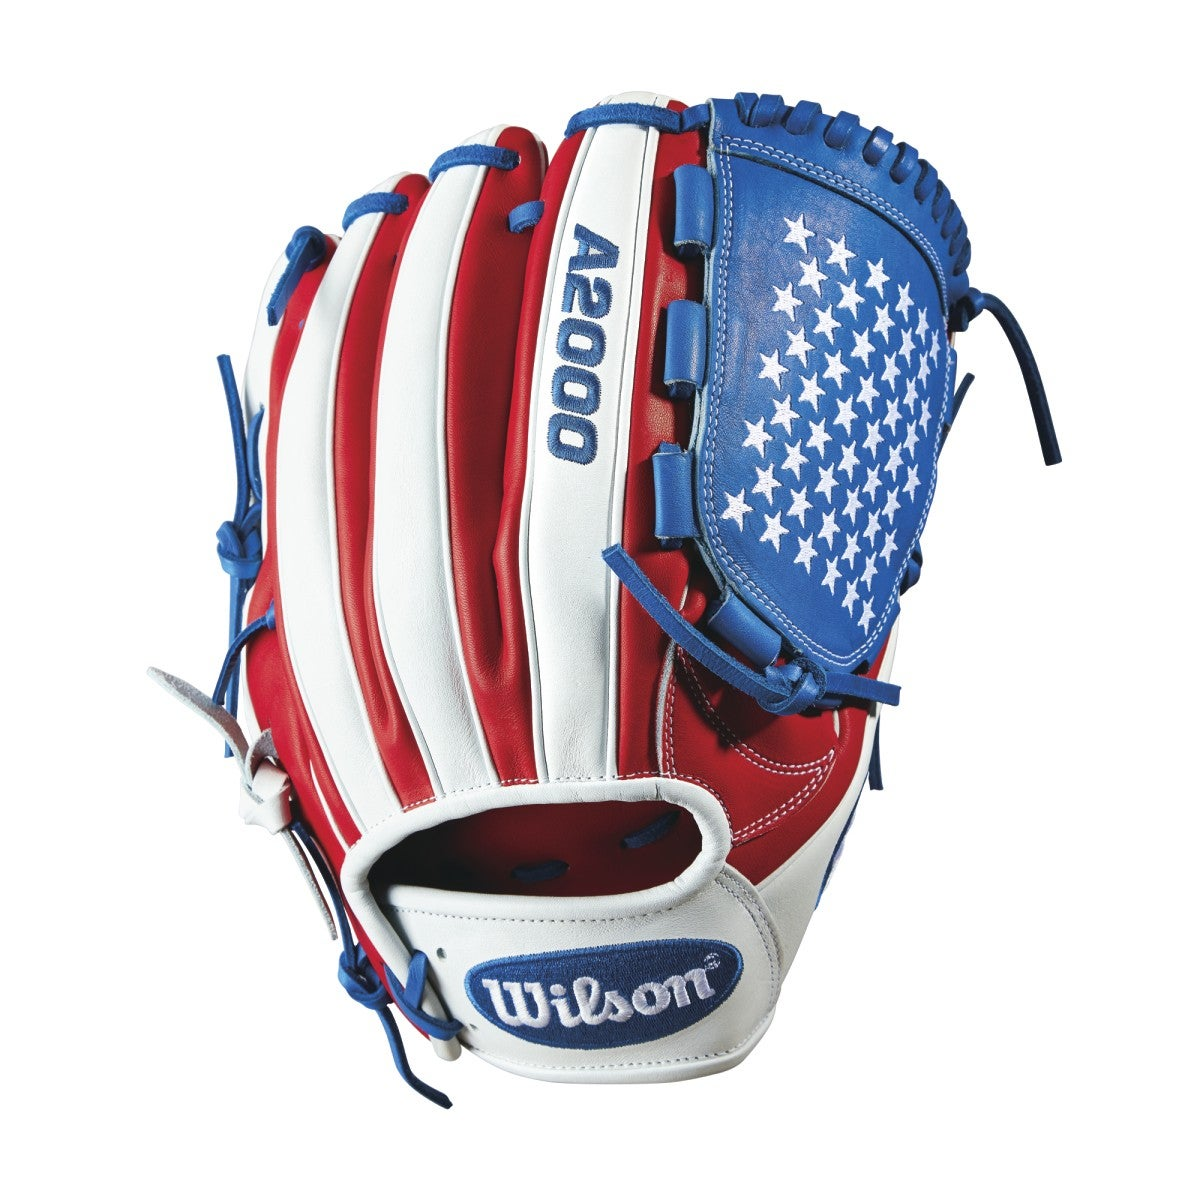 Old Glory A2000 Glove July 2016 Wilson Sporting Goods